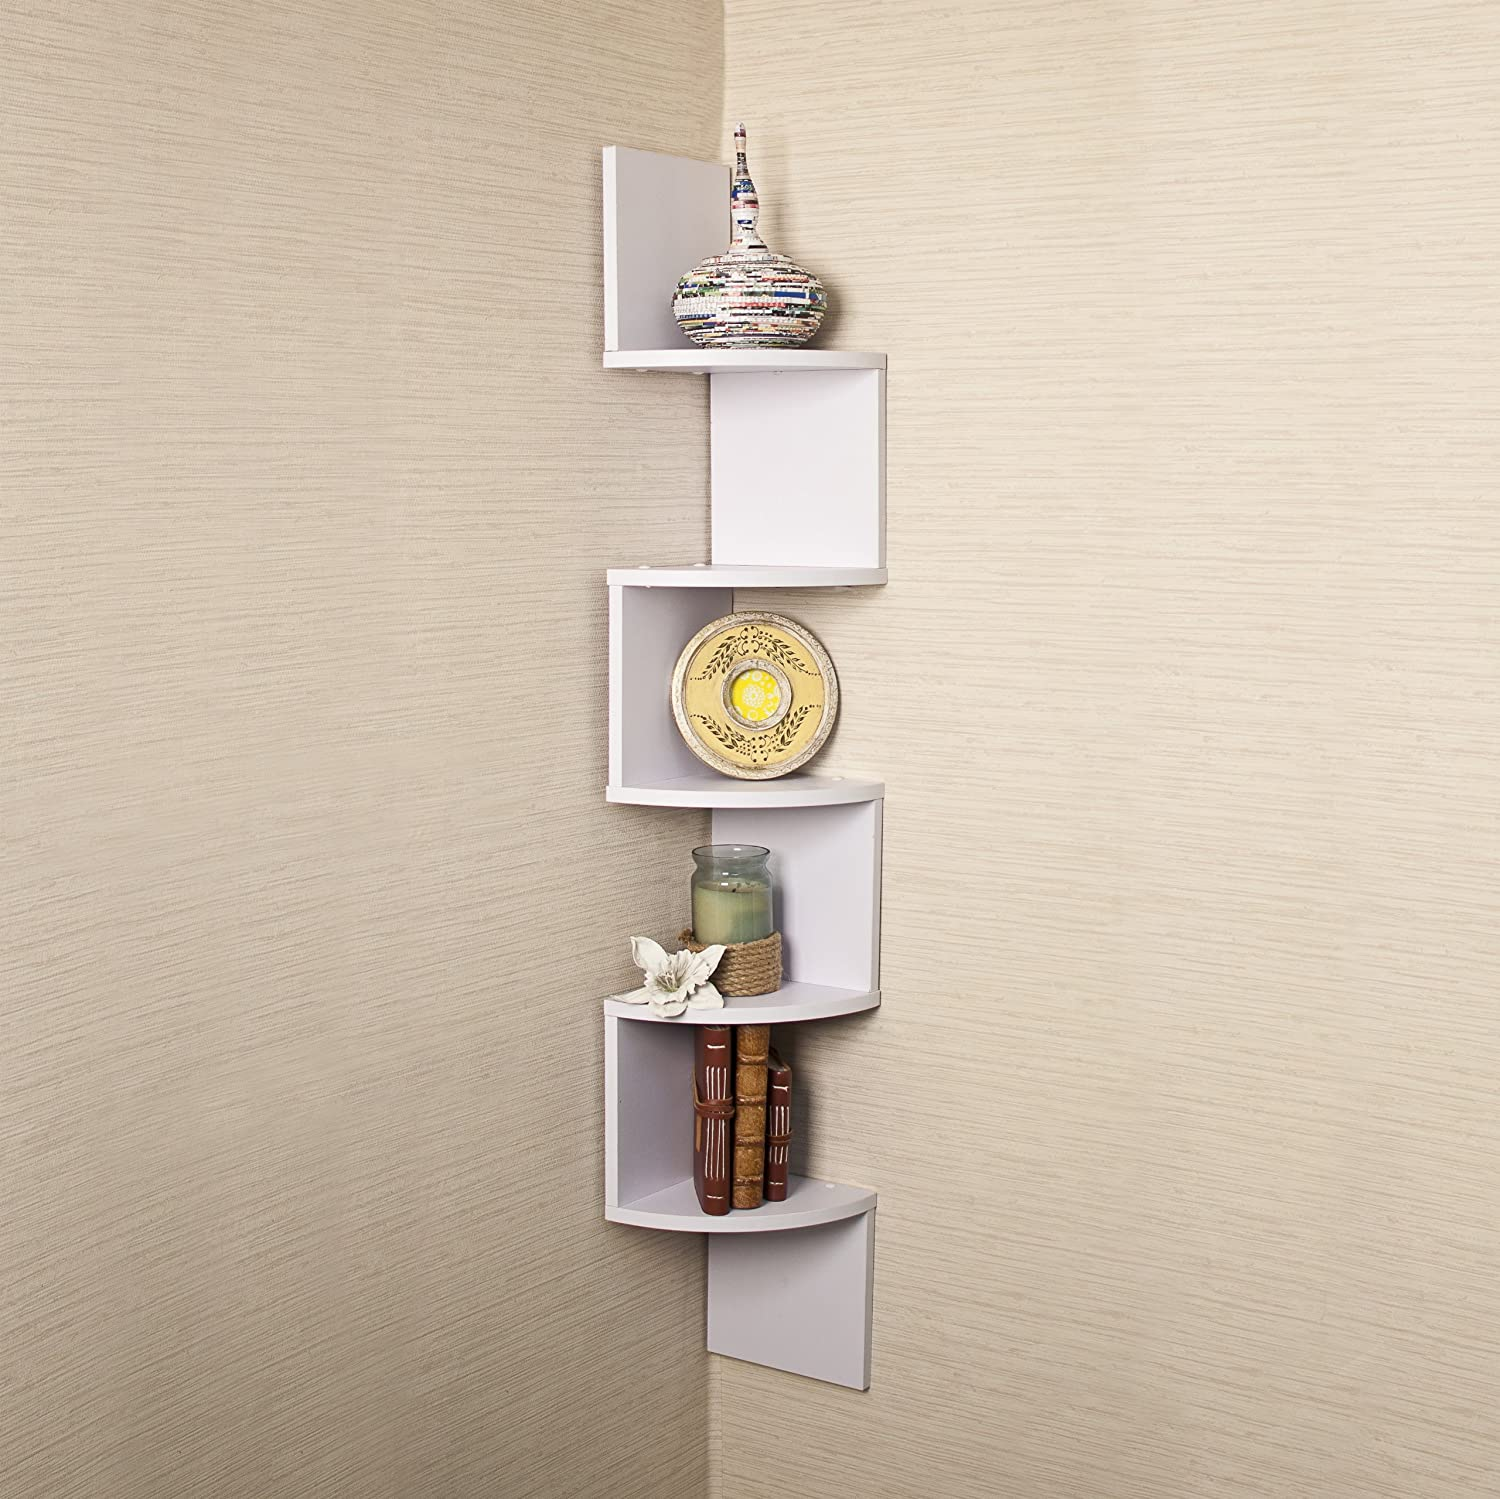 Wall Mounted Wood Shelving Units